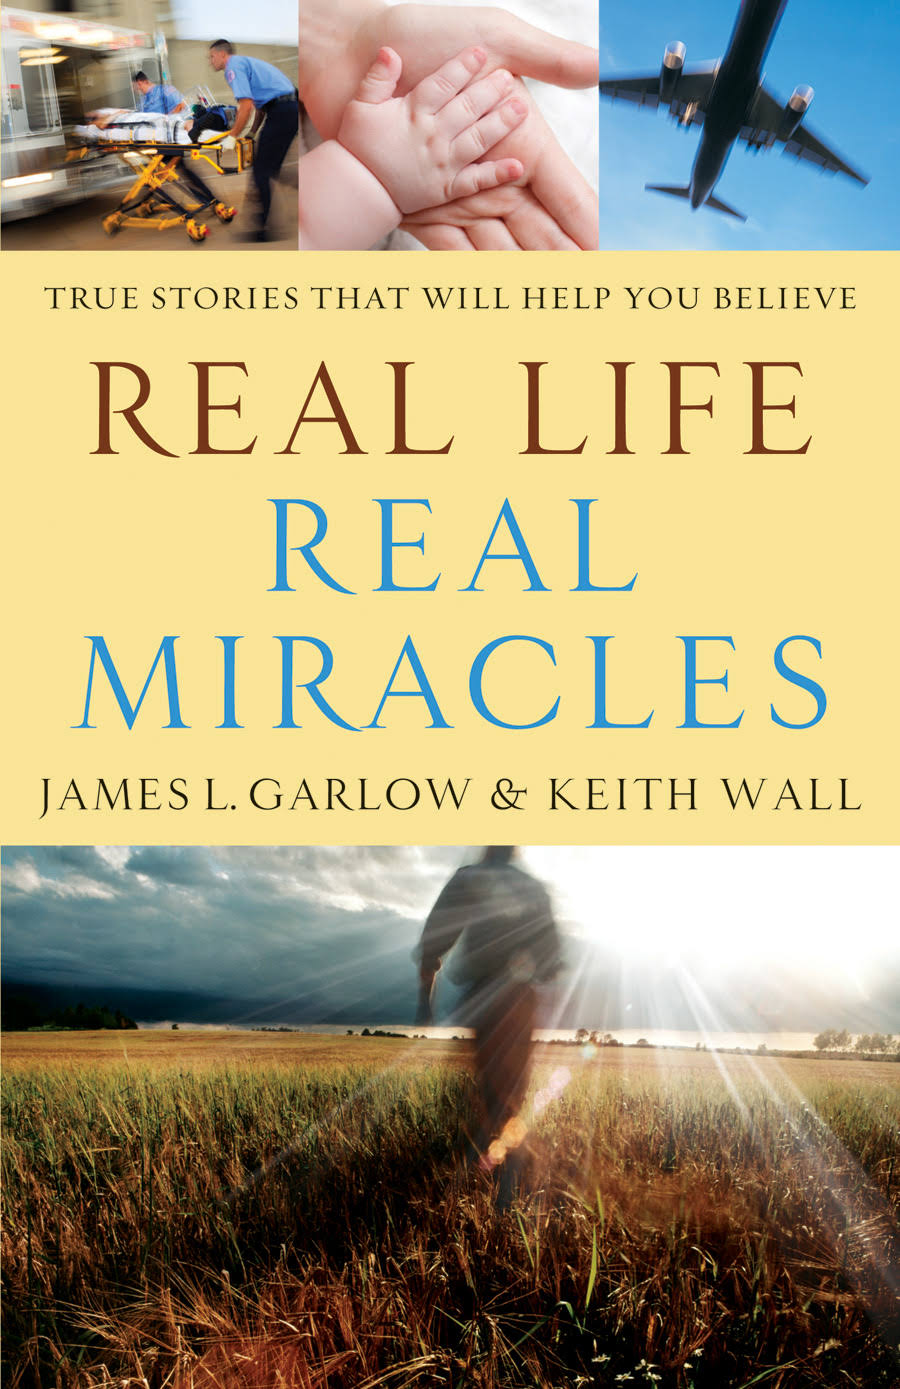 Book review 9: Real Life, Real Miracles.